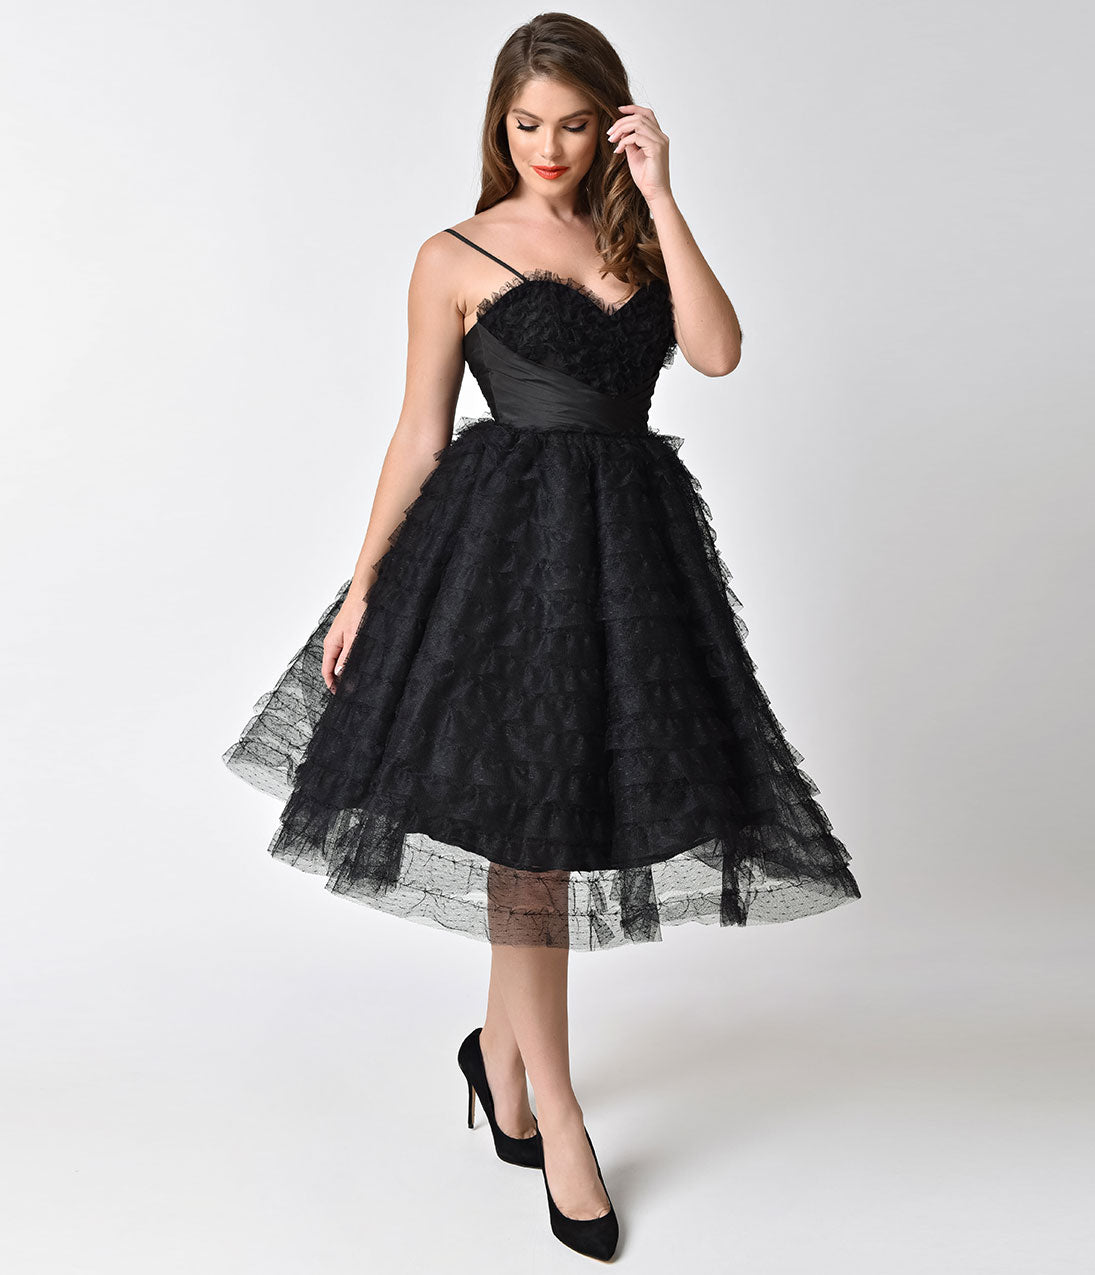 1950s Party Dresses & Prom Dresses for Sale Unique Vintage 1950S Black Ruffled Tulle Sweetheart Cupcake Swing Dress $128.00 AT vintagedancer.com